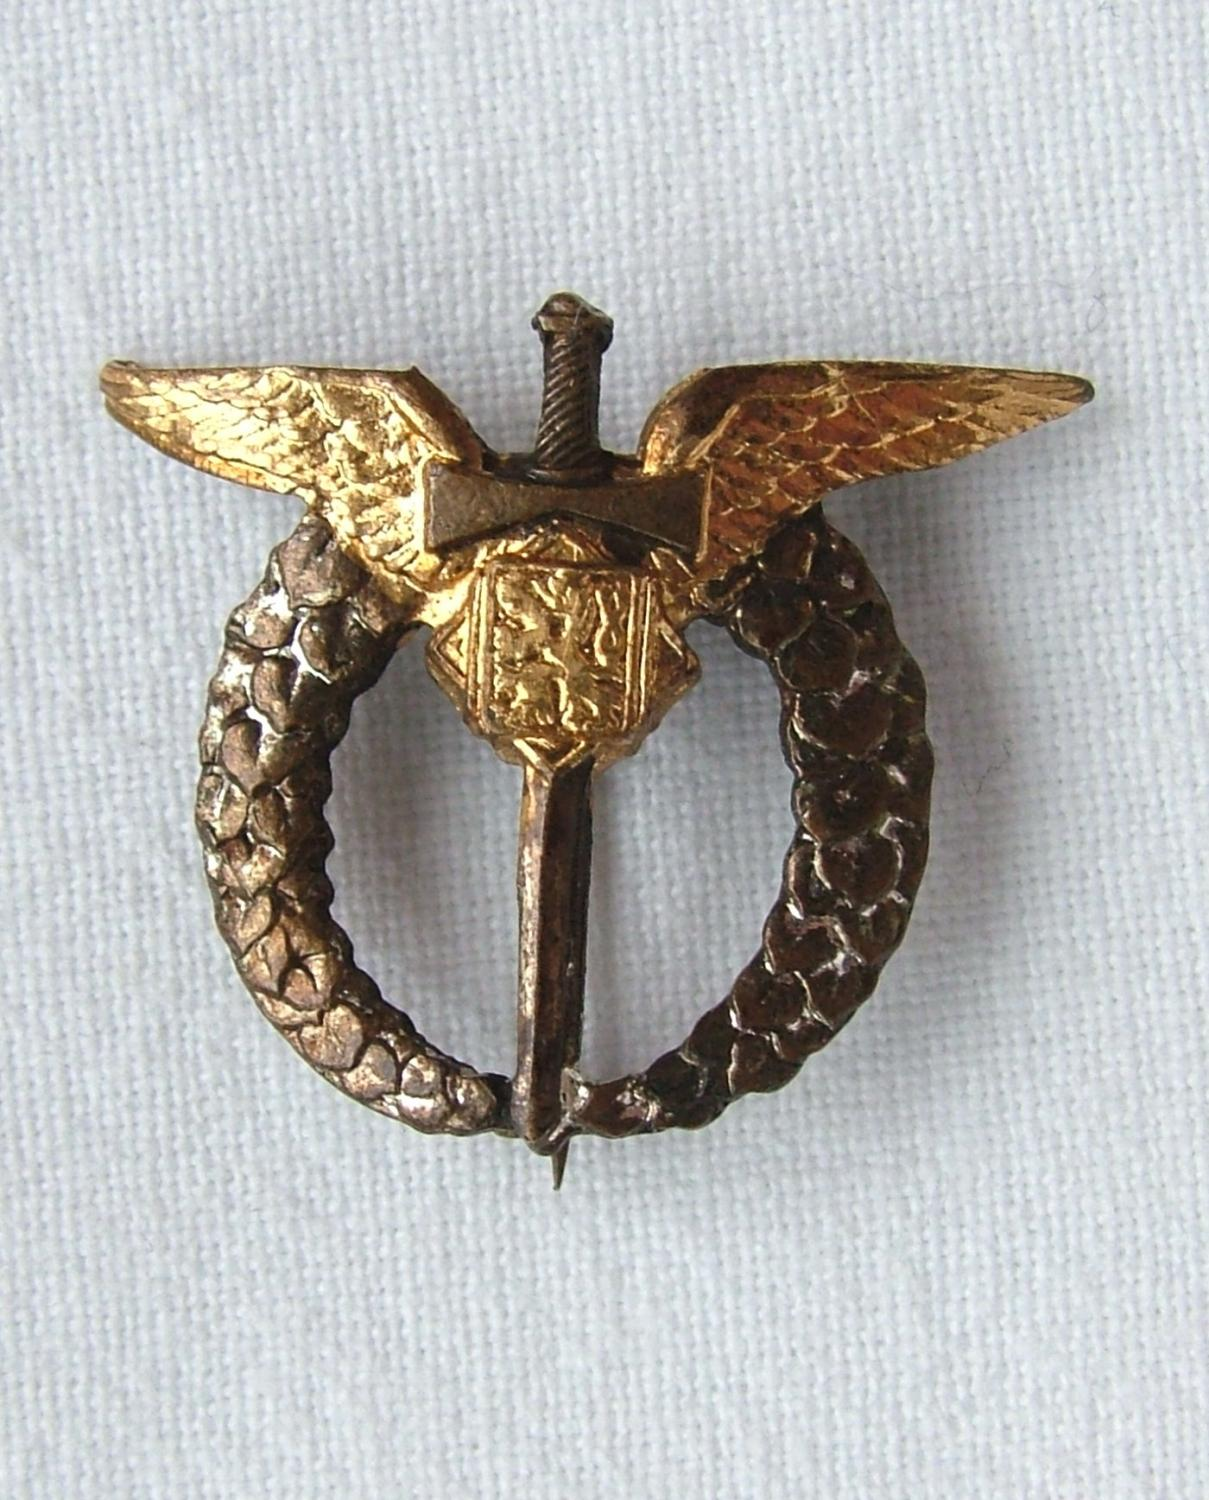 Czechoslovakian Pilot's Badge - Miniature